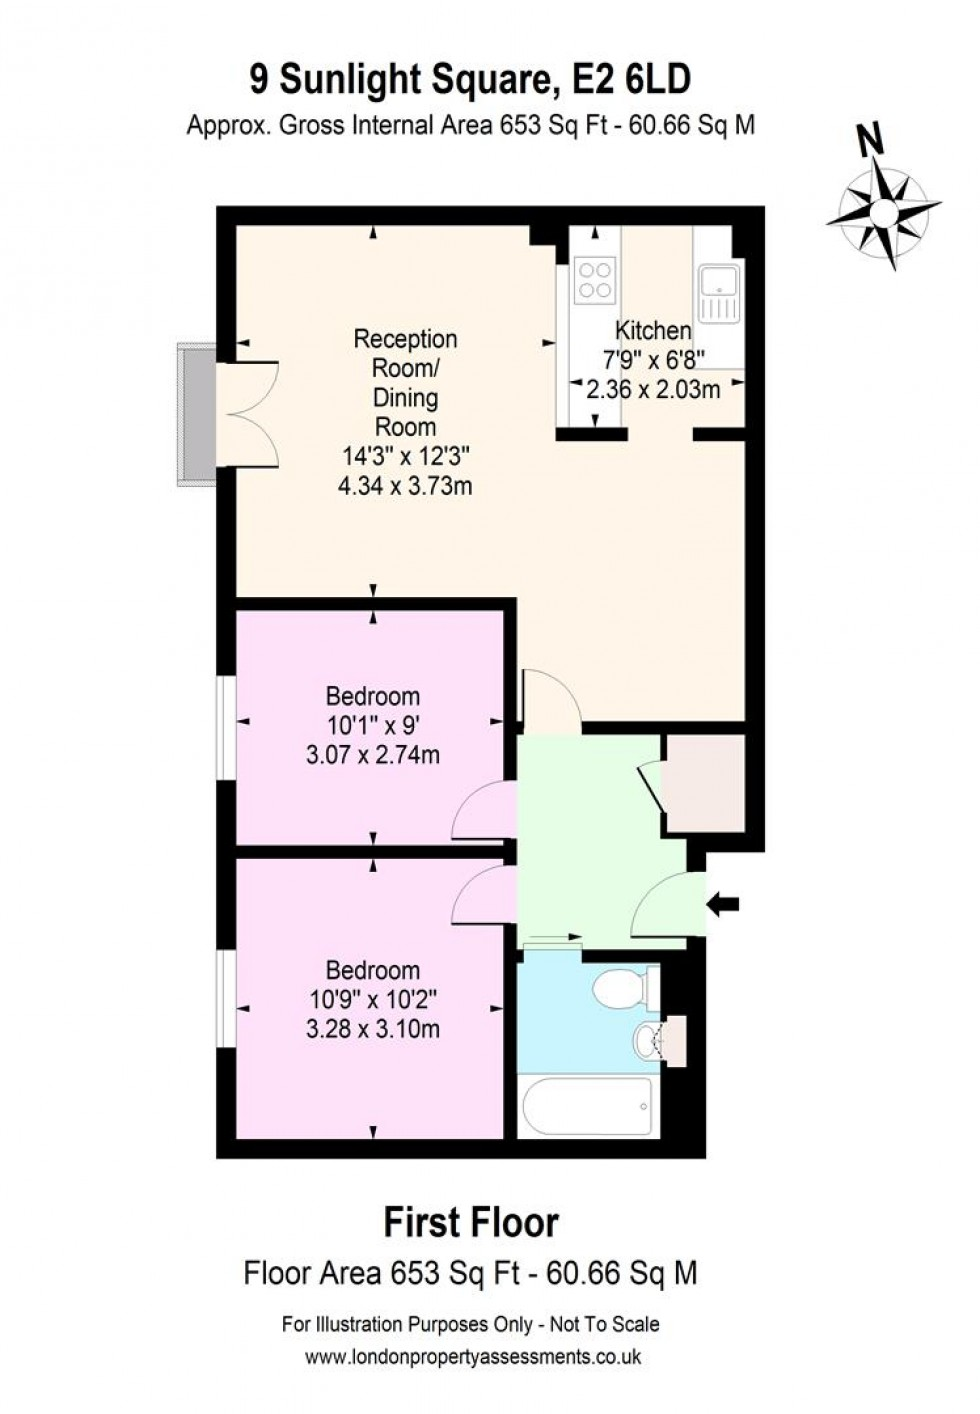 Floorplan for Sunlight Square, London - EAID:ELMSESTATESAPI, BID:1